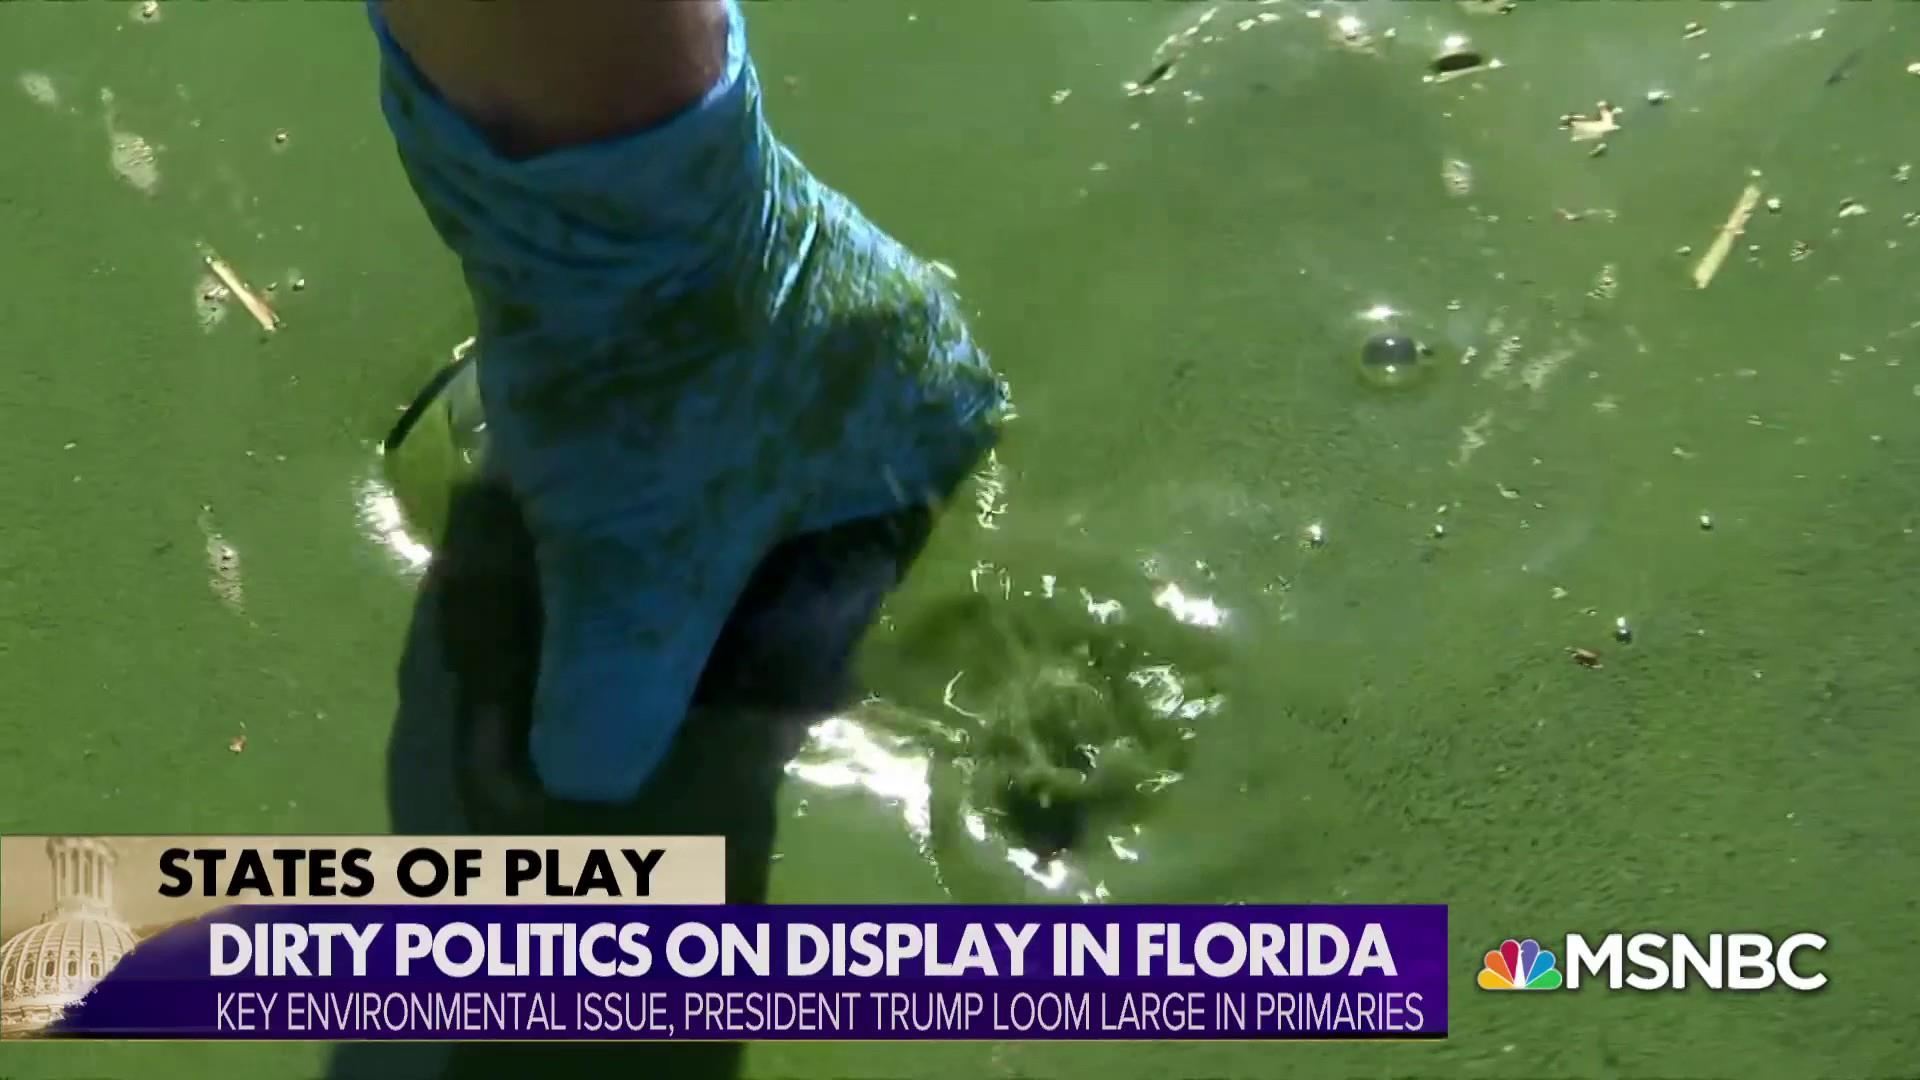 Toxic algae puts environment at the top of mind for Florida voters